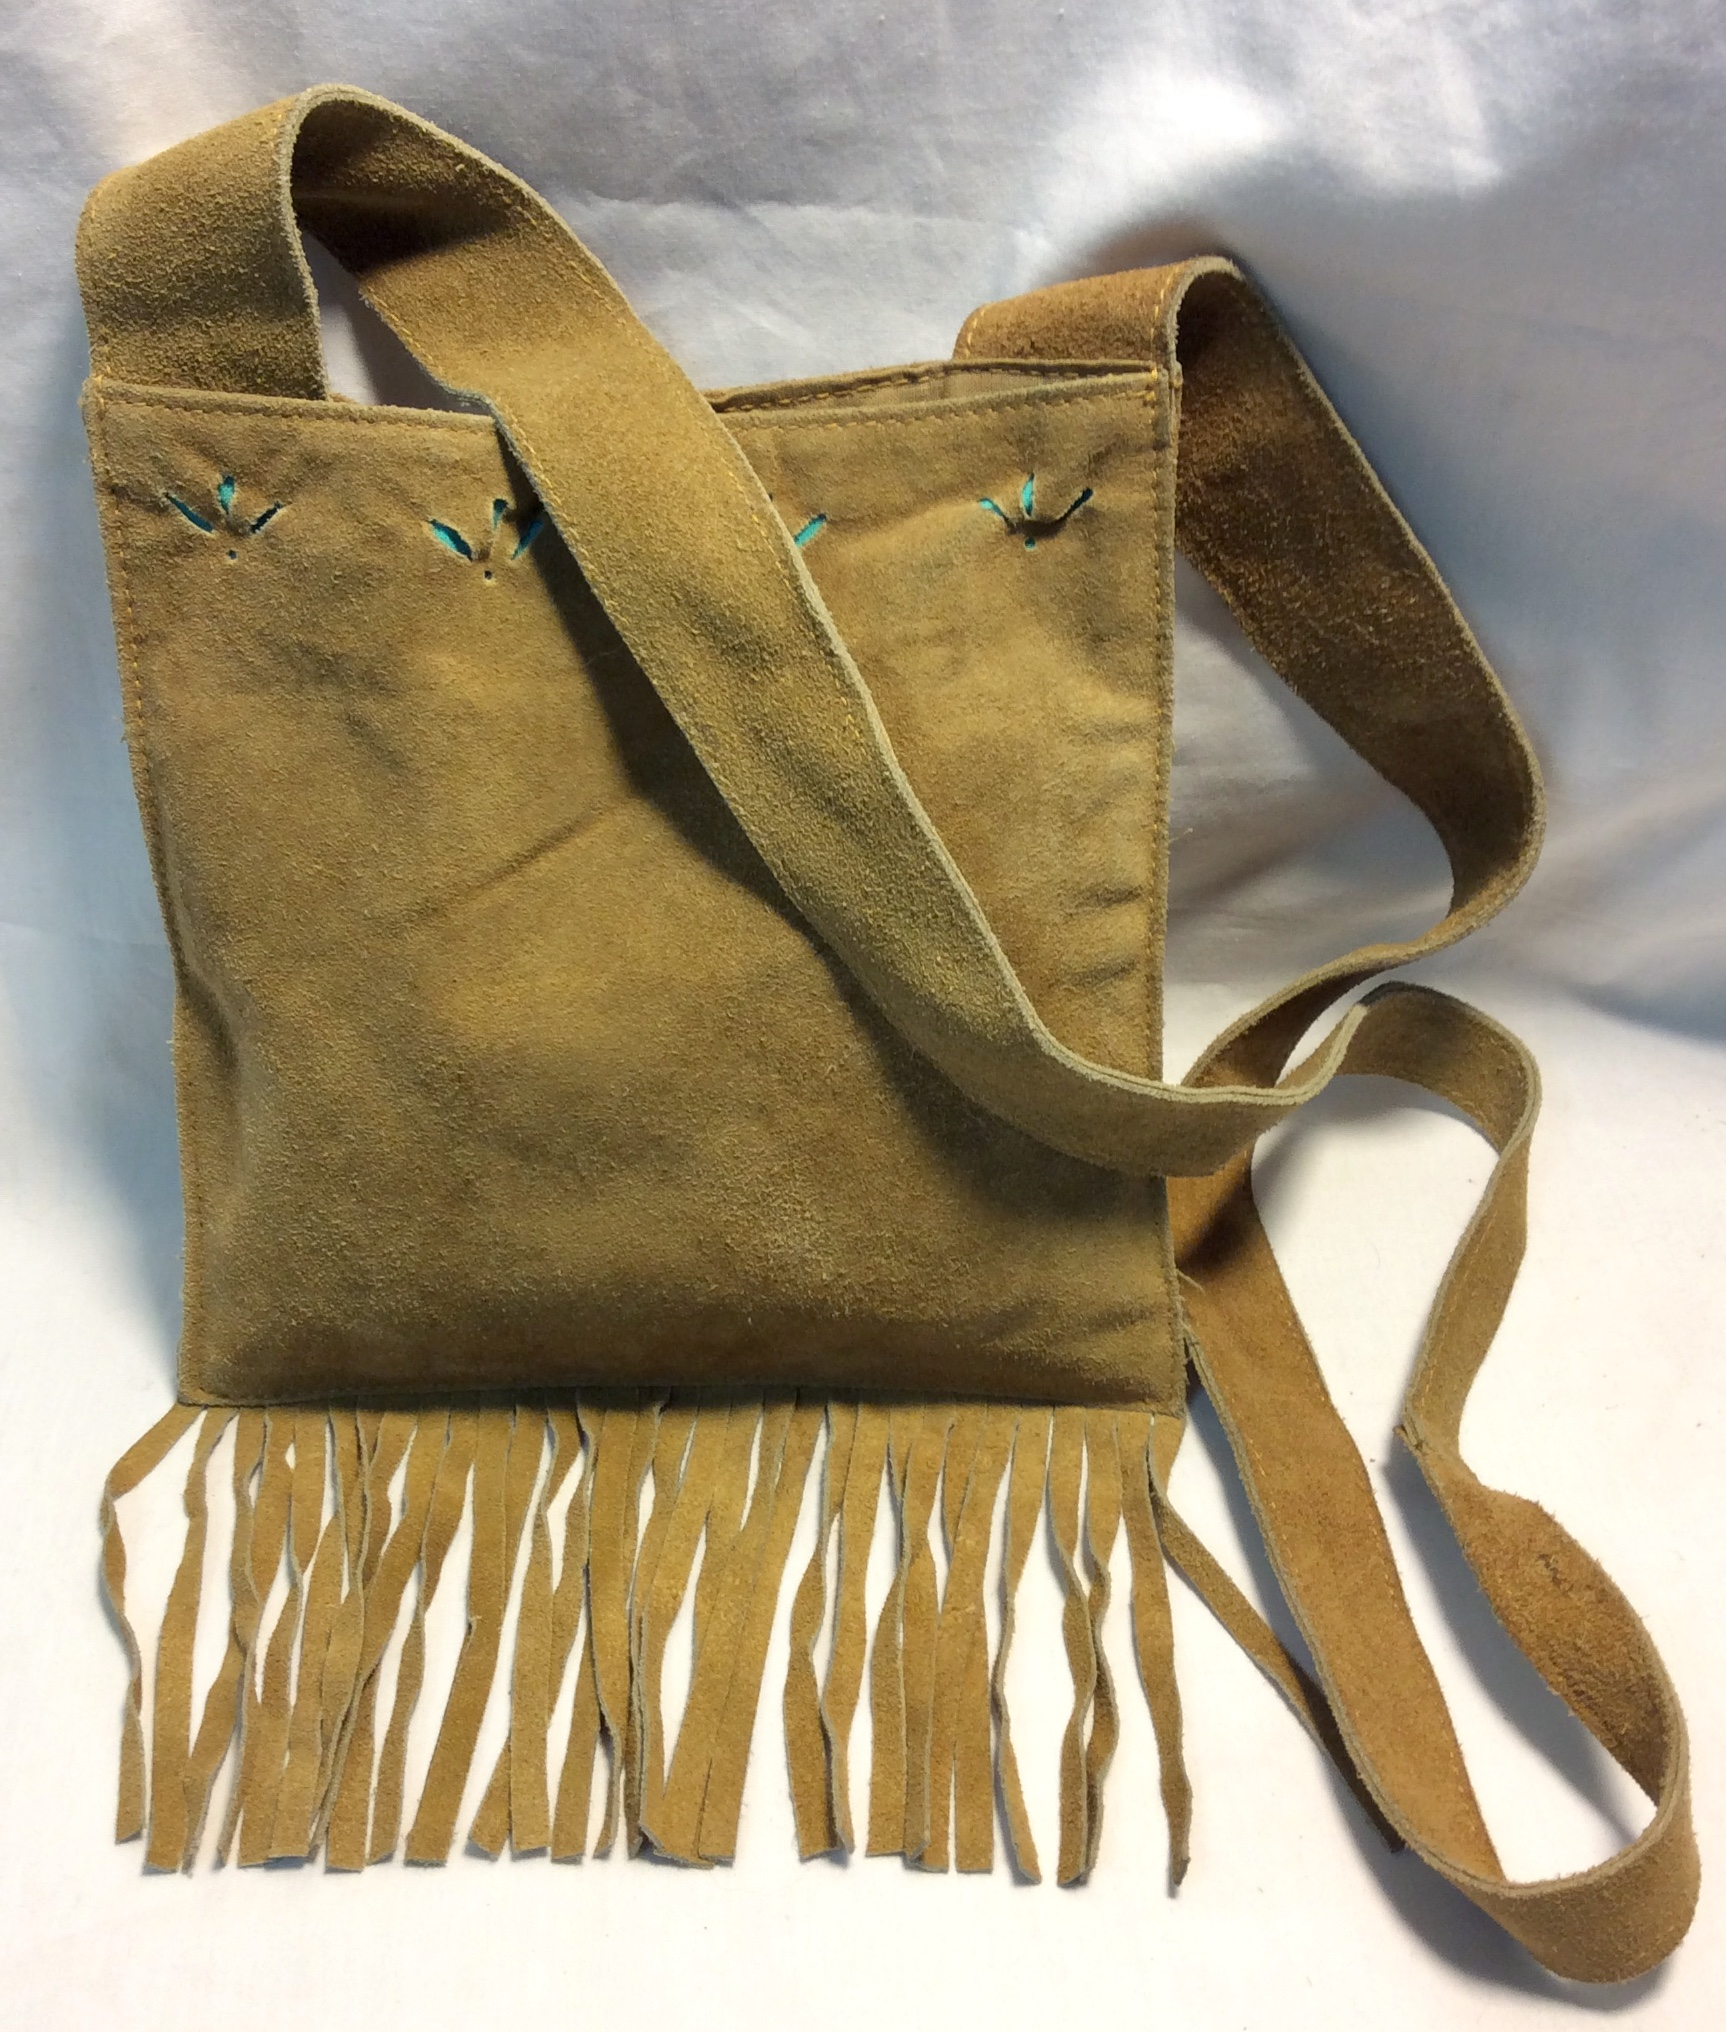 Tan leather bag with fringe